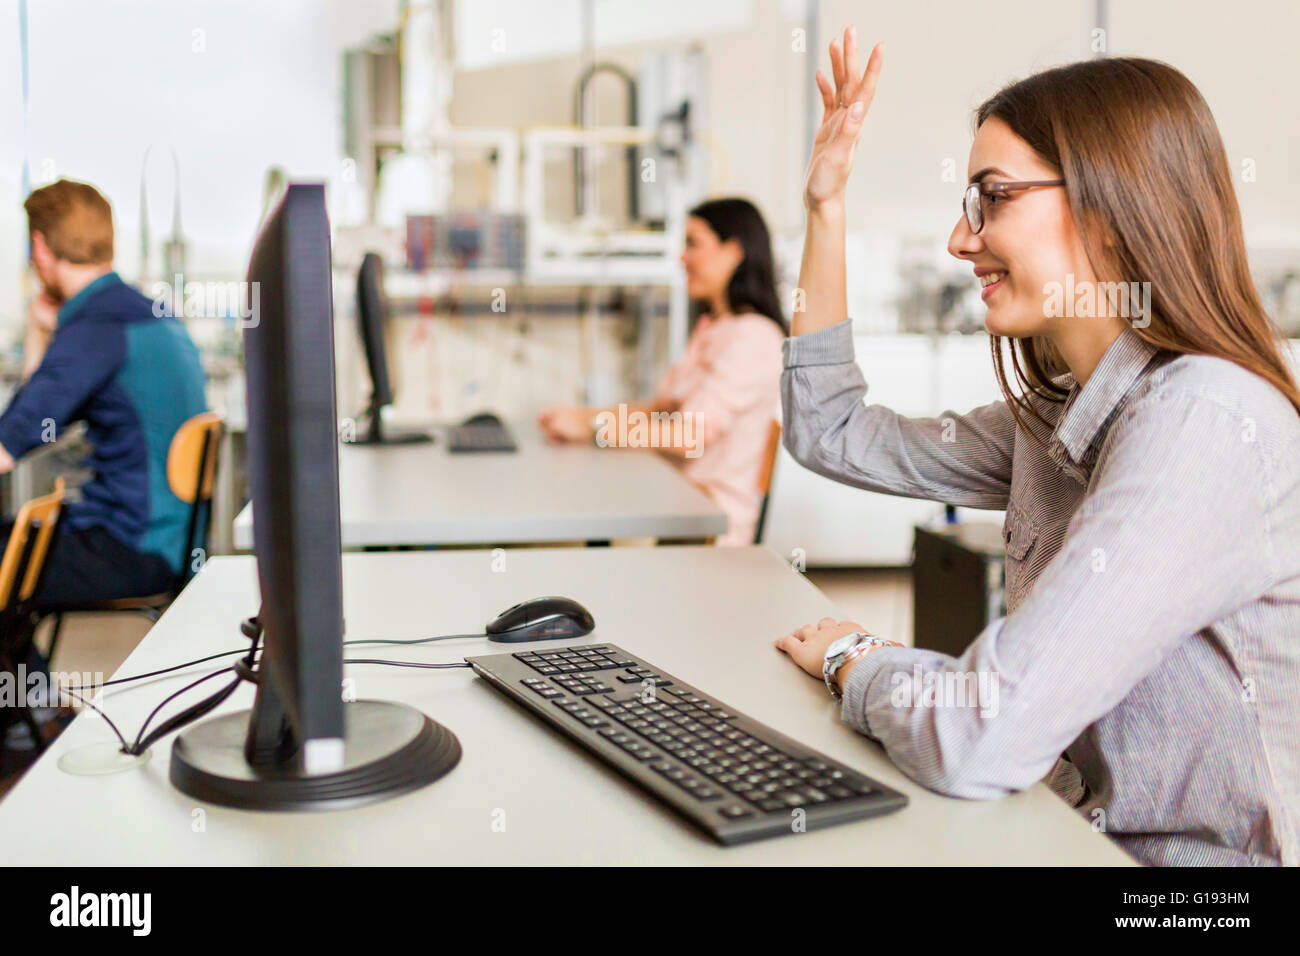 Beautiful young girl raising hand in classroom while sitting at a desk - Stock Image